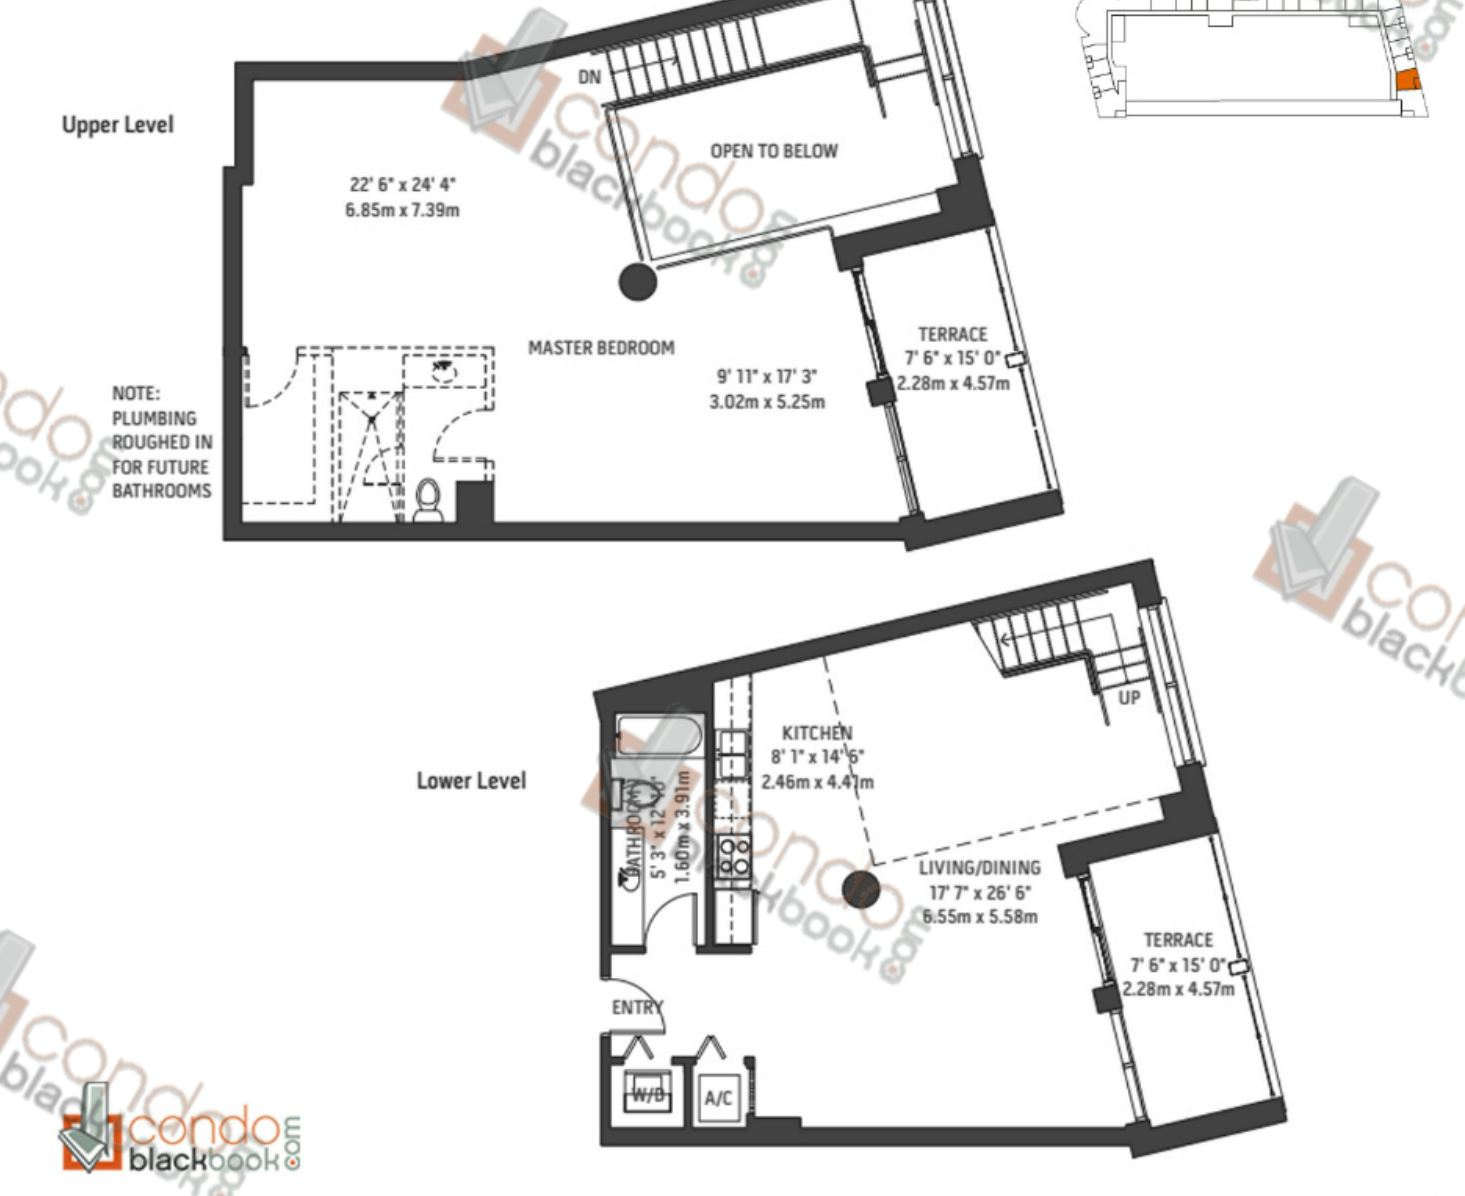 Floor plan for Midblock Condominium Midtown Miami, model Unit L9, line 09, 0/1 bedrooms, 1,629 sq ft